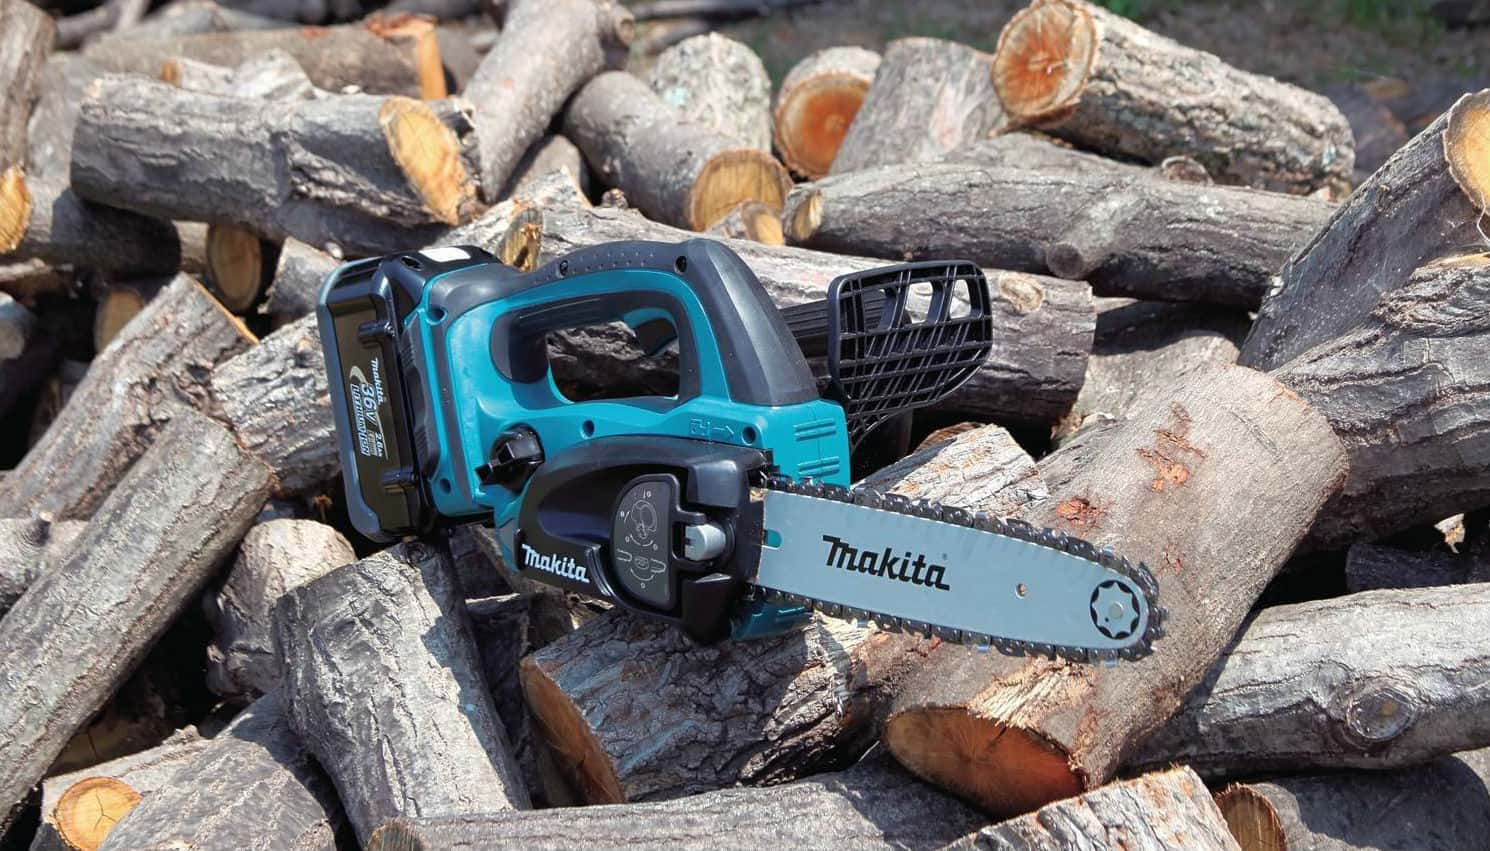 Makita HCU02C1 36V LXT Lithium Ion Cordless chainsaw